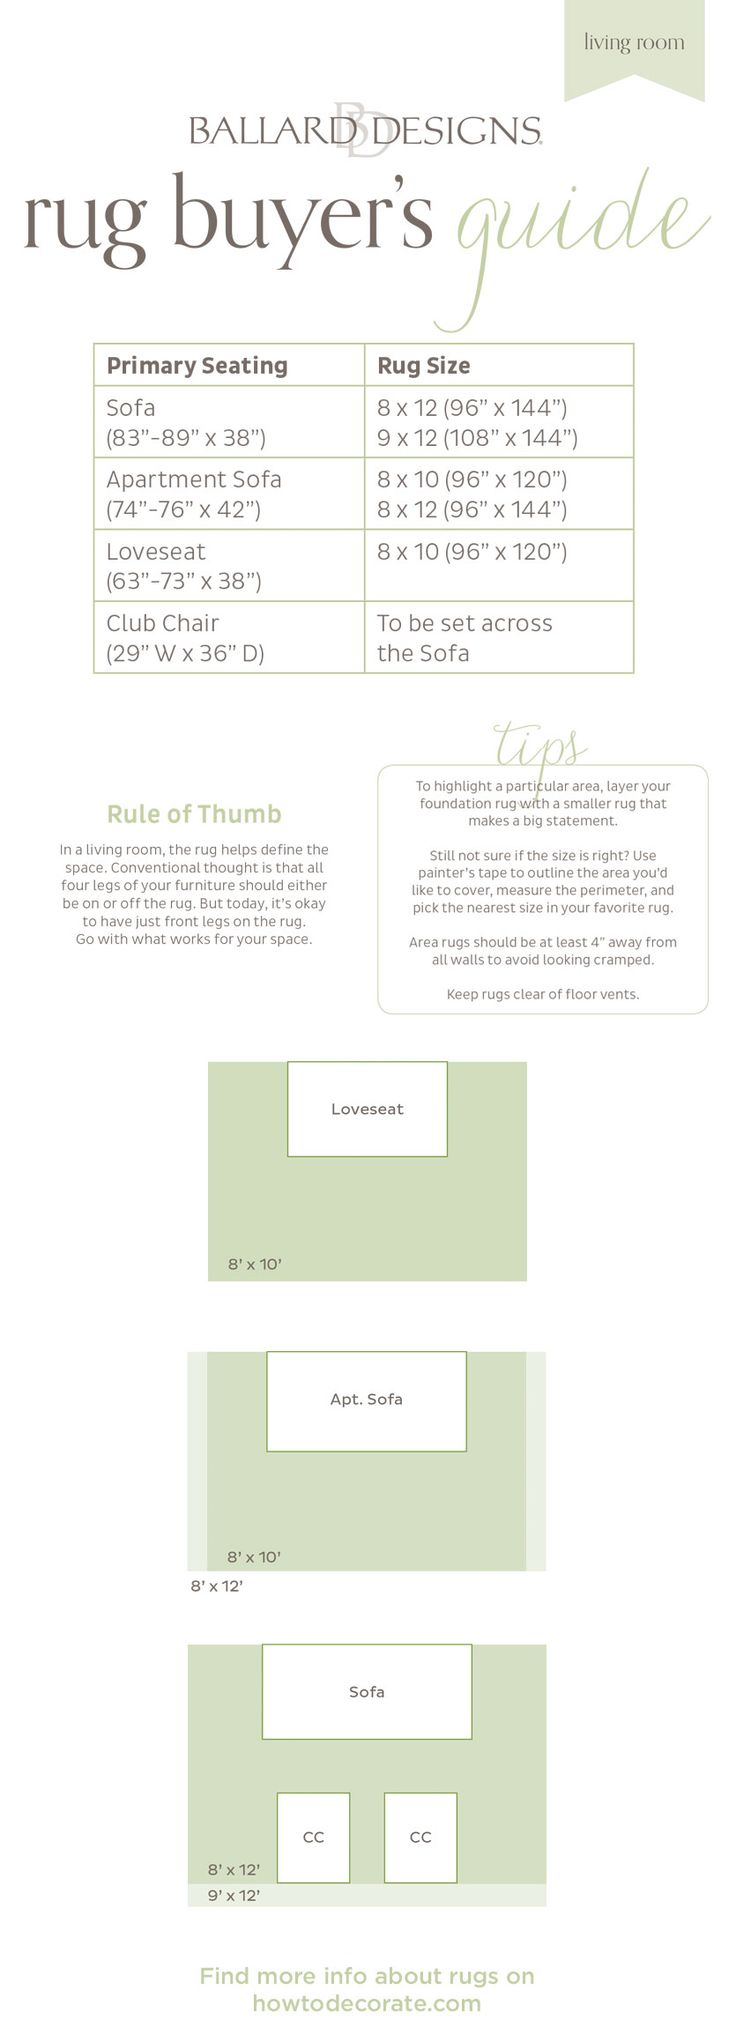 Best 25 rug size ideas on pinterest rug size guide rug - How to measure for area rug in living room ...